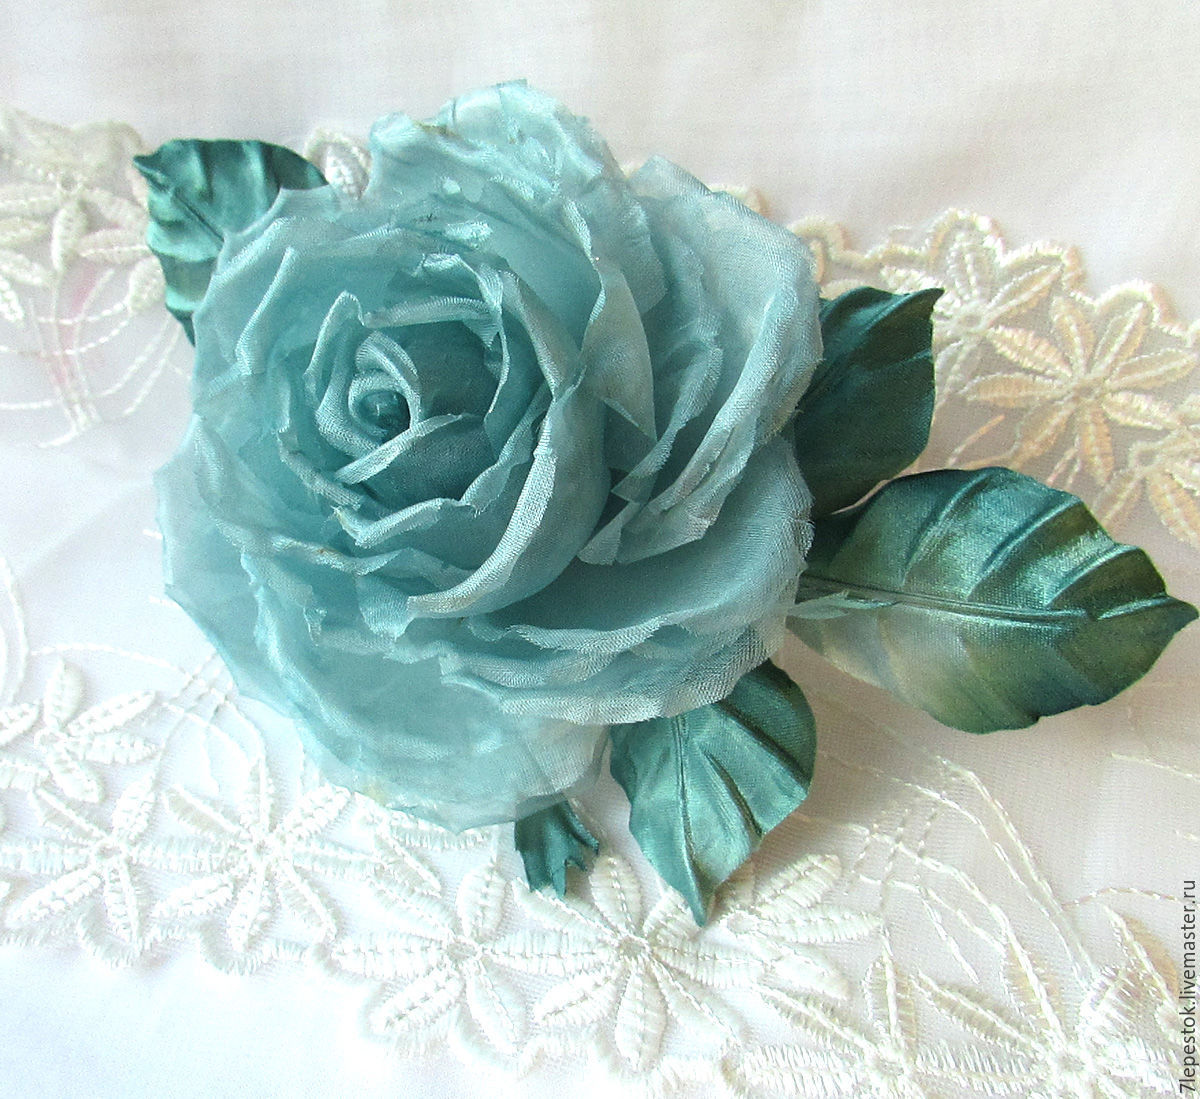 Brooch rose fresh mint morning silk flowers shop online on brooch handmade rose fresh mint morning the flowers of silk be happy mightylinksfo Images